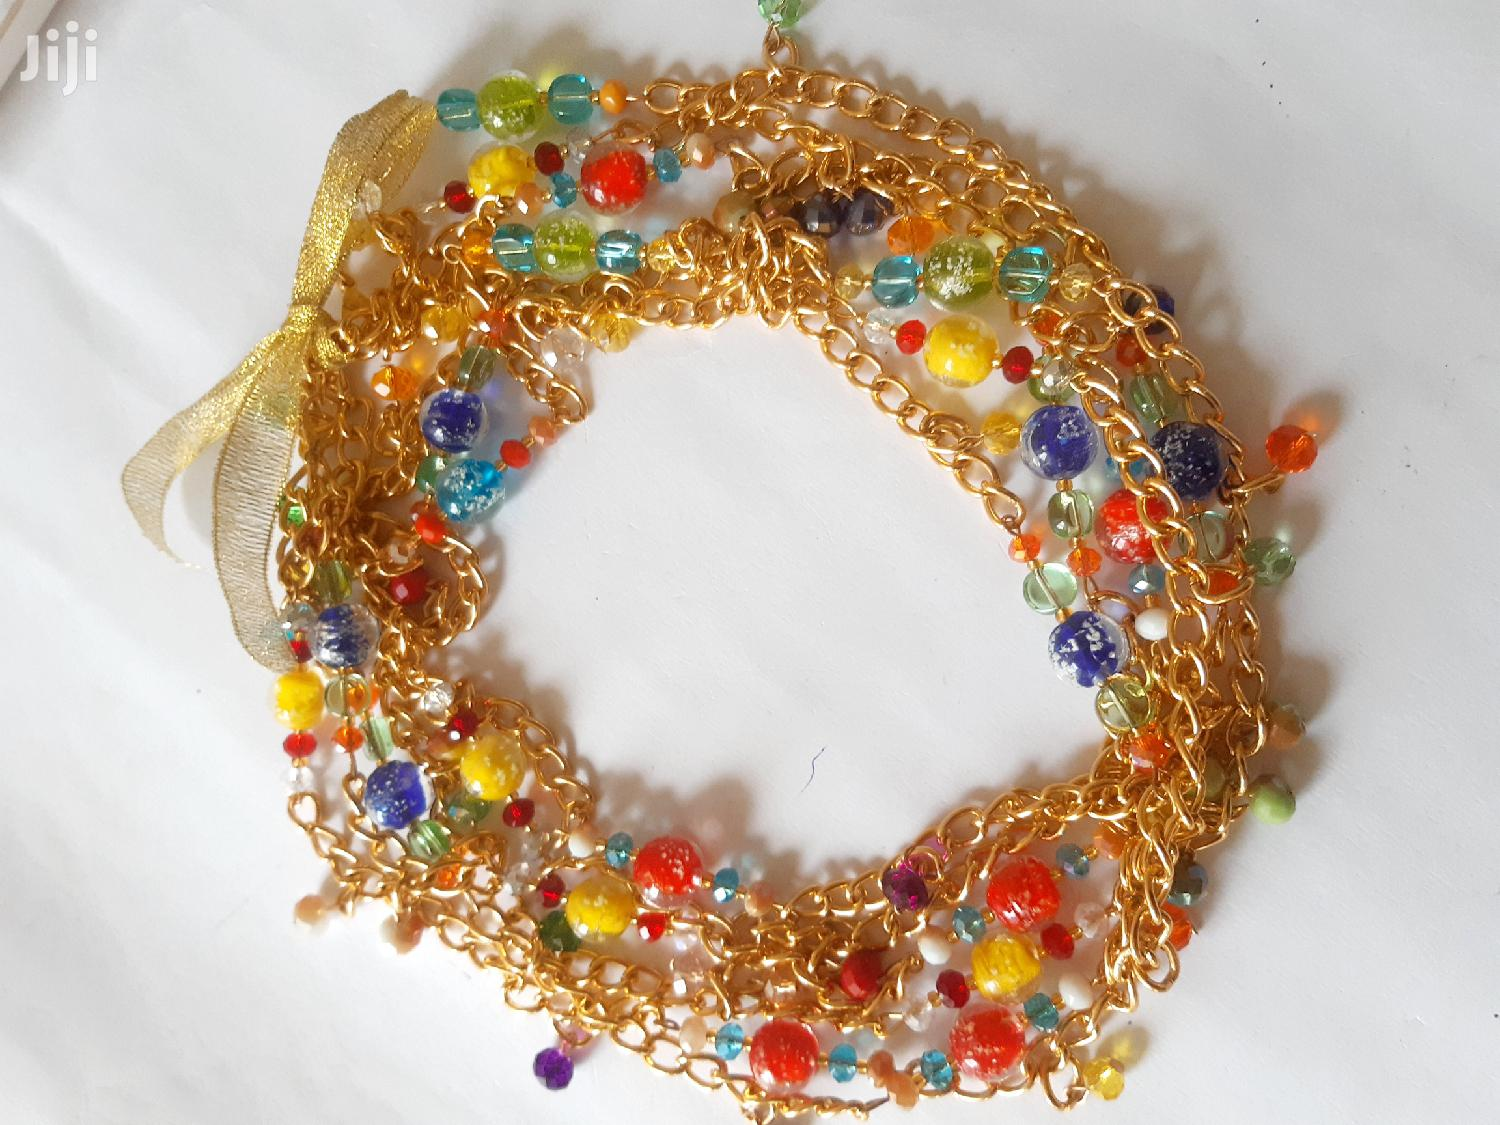 Archive: Glow Beads Mixed With Gold Chain Waistbeads